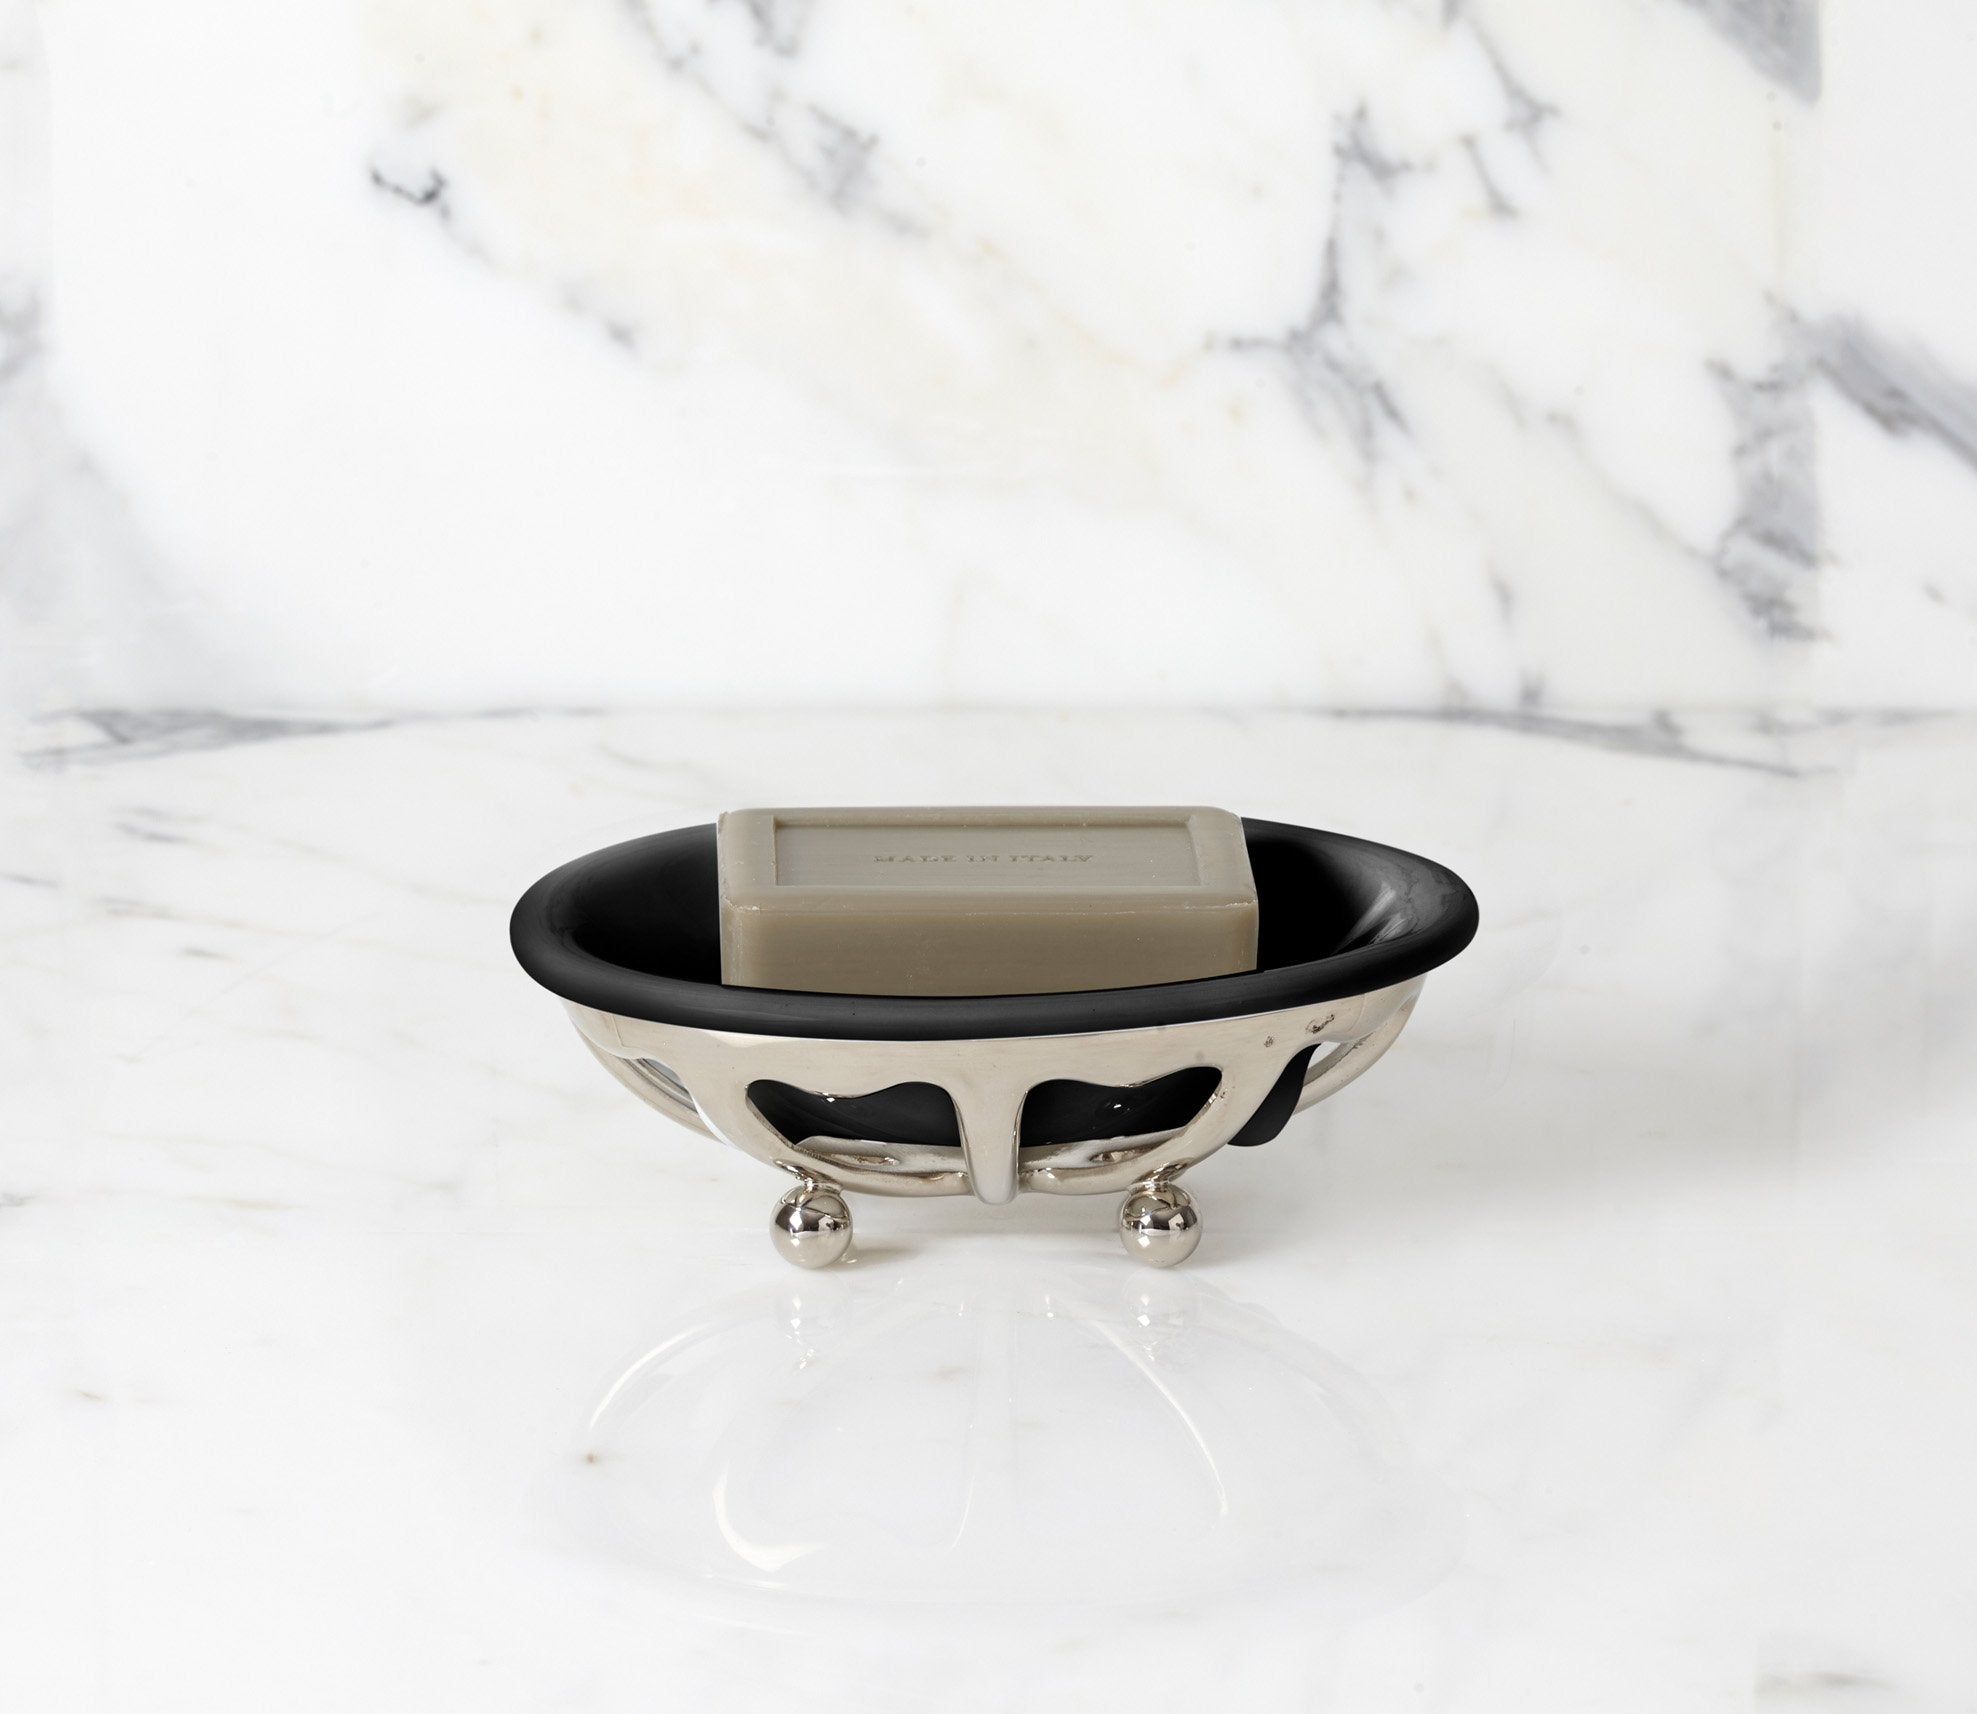 Classic Soap Dish with Black Porcelain Product Image 1